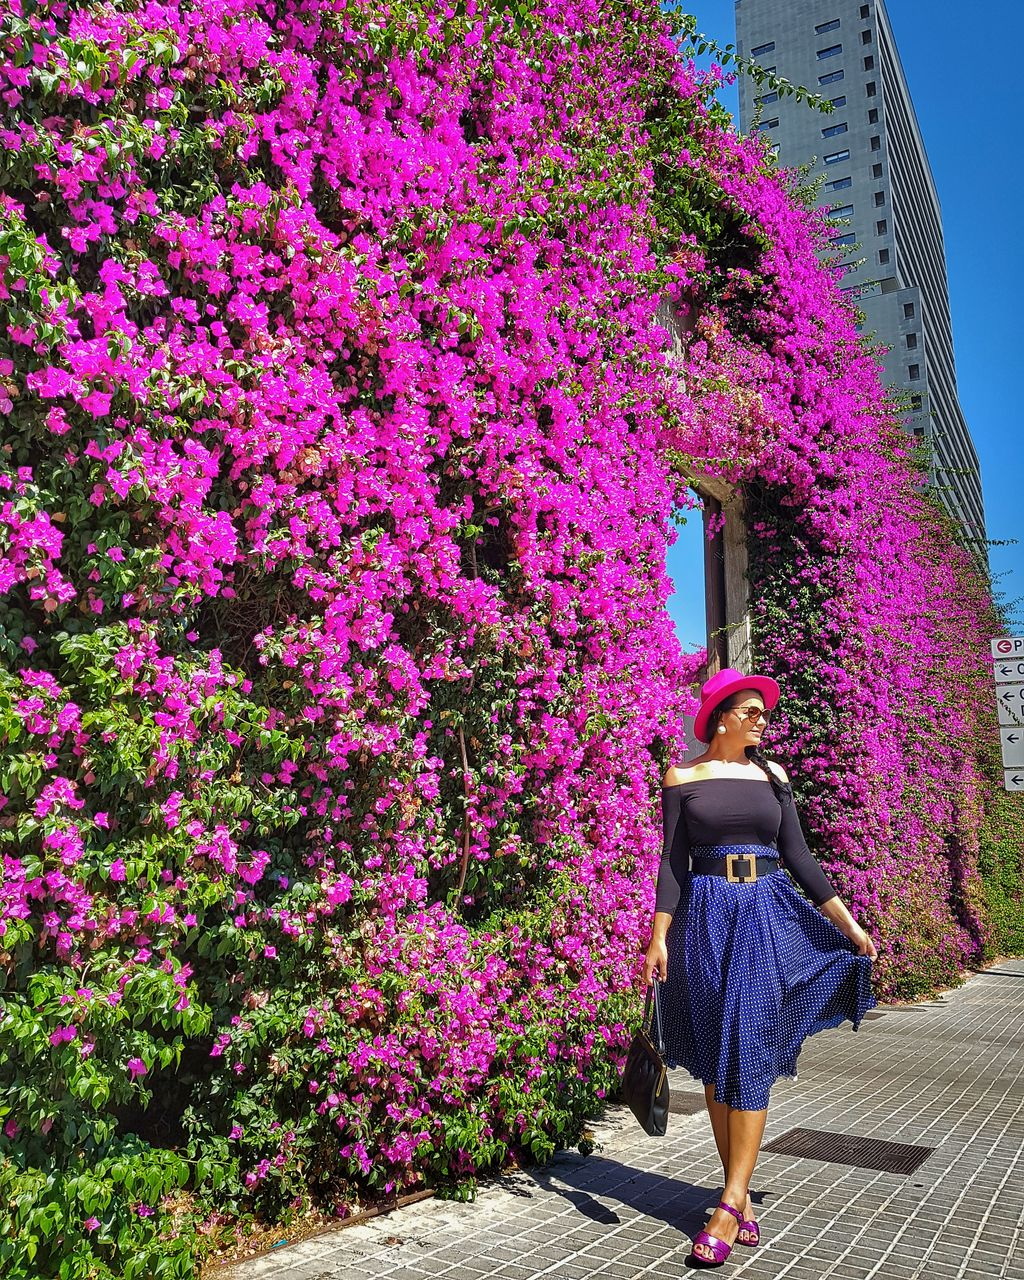 Young woman walking on footpath by wall covered with pink flowering plants